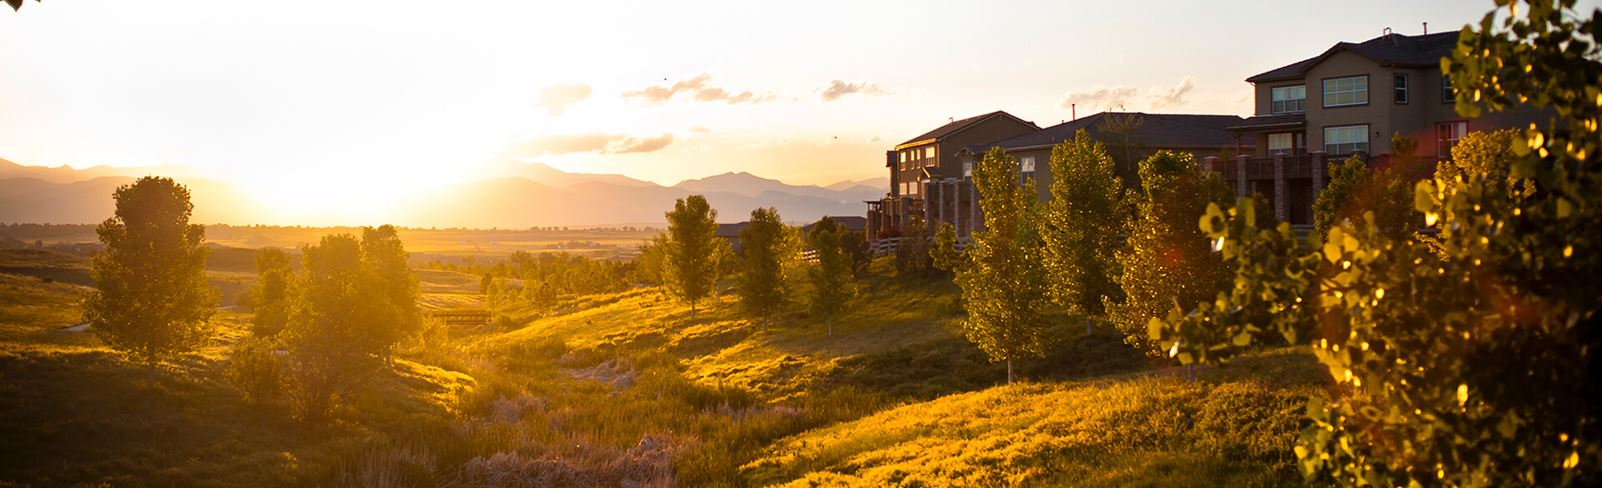 View of nature surrounding Anthem in Broomfield, CO | New Homes in Broomfield, Co from Anthem